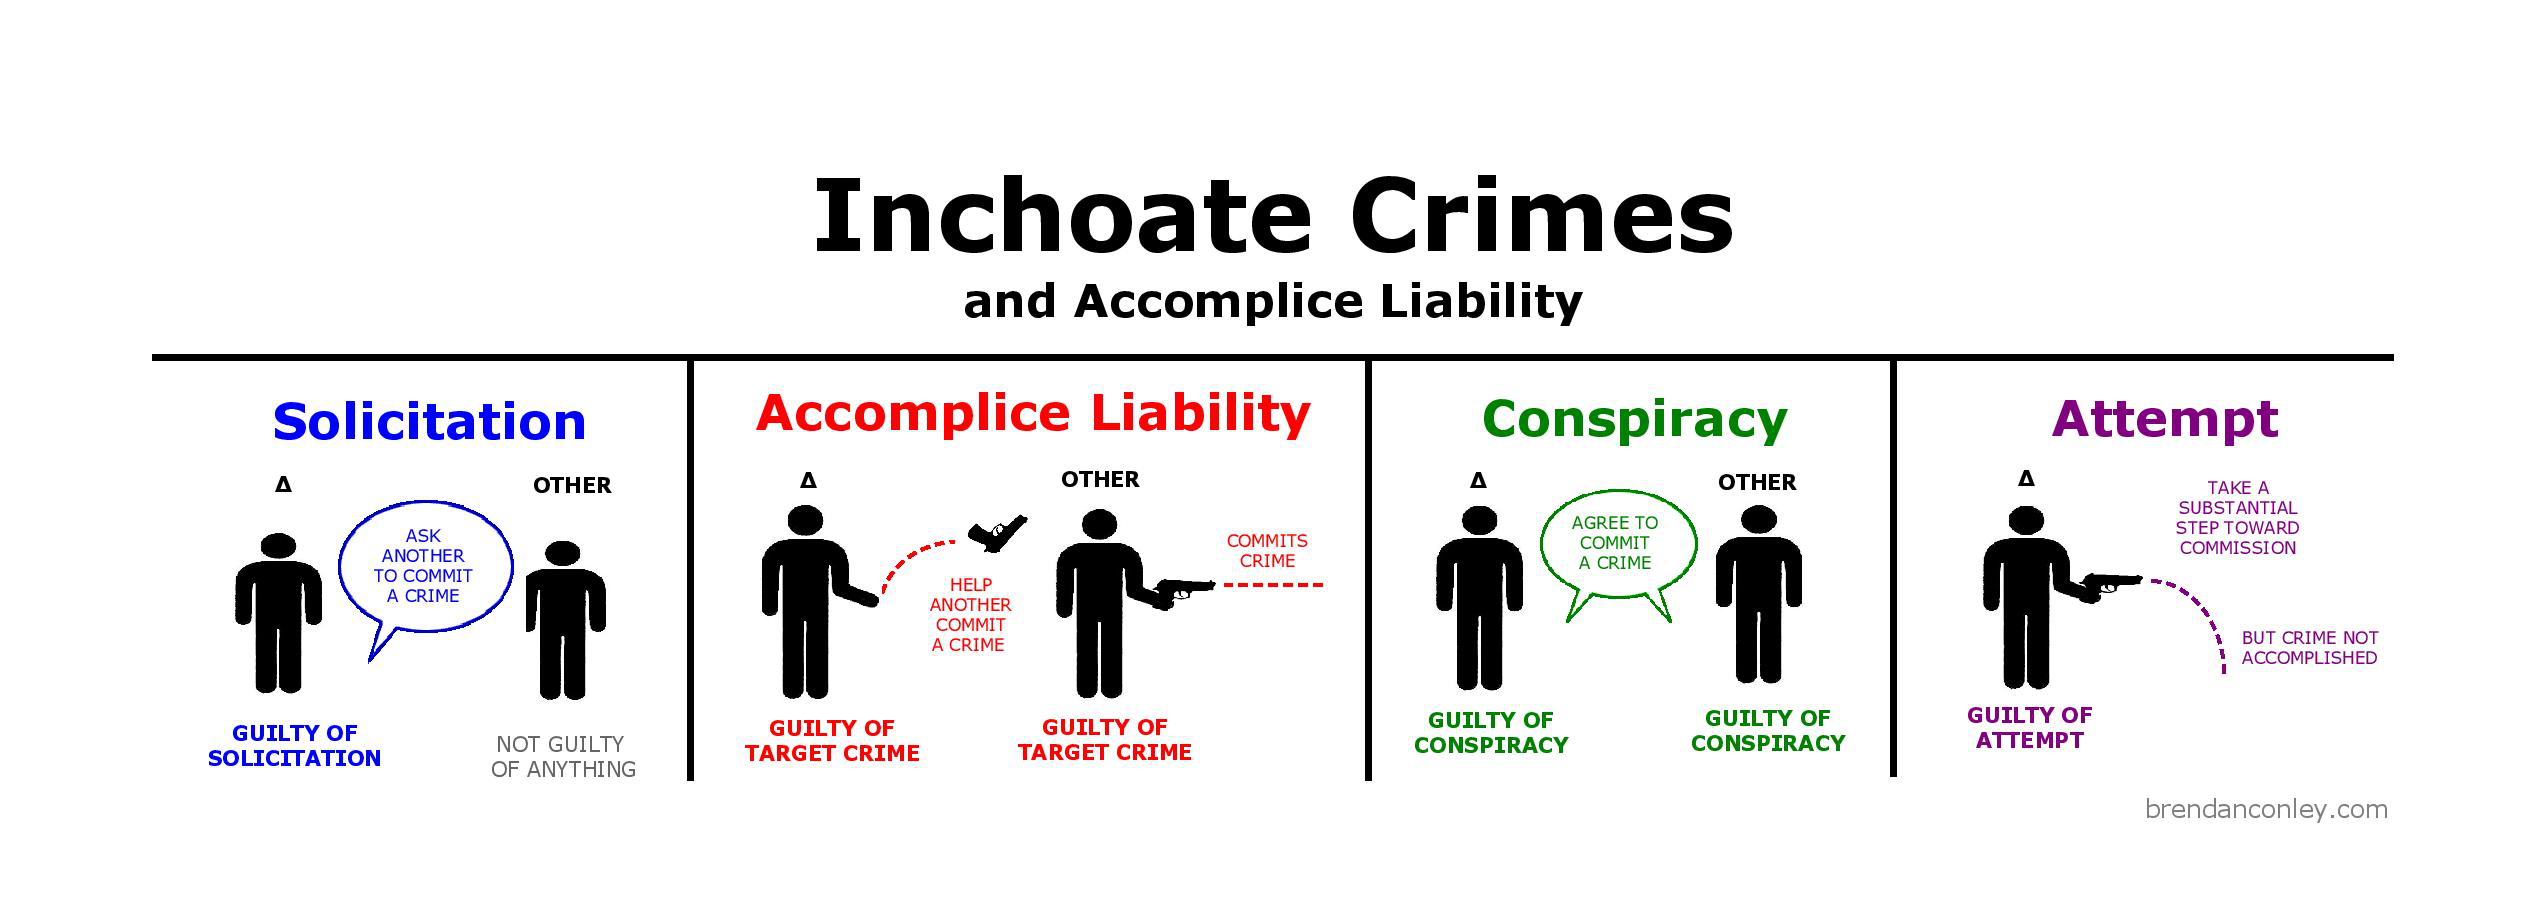 Inchoate Crimes and Accomplice Liability